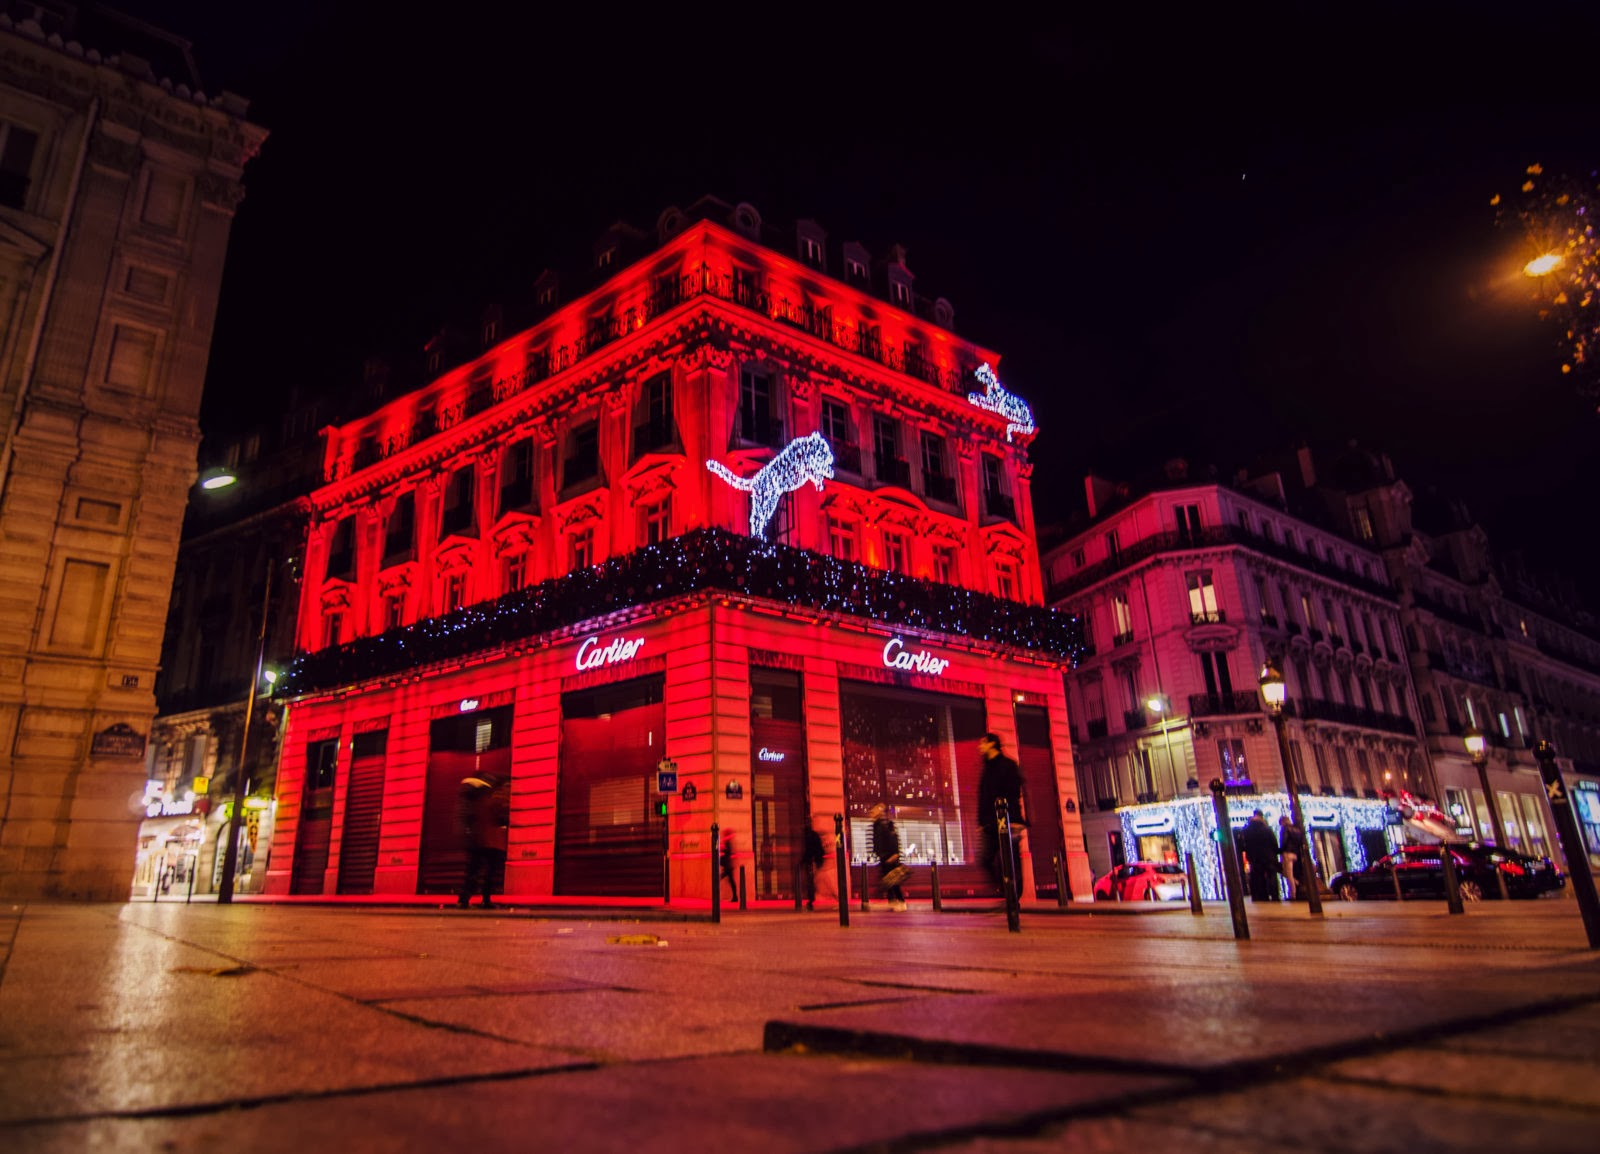 #BA111A ParisDailyPhoto: Cartier Building 5365 decorations de noel champs elysees 1600x1154 px @ aertt.com